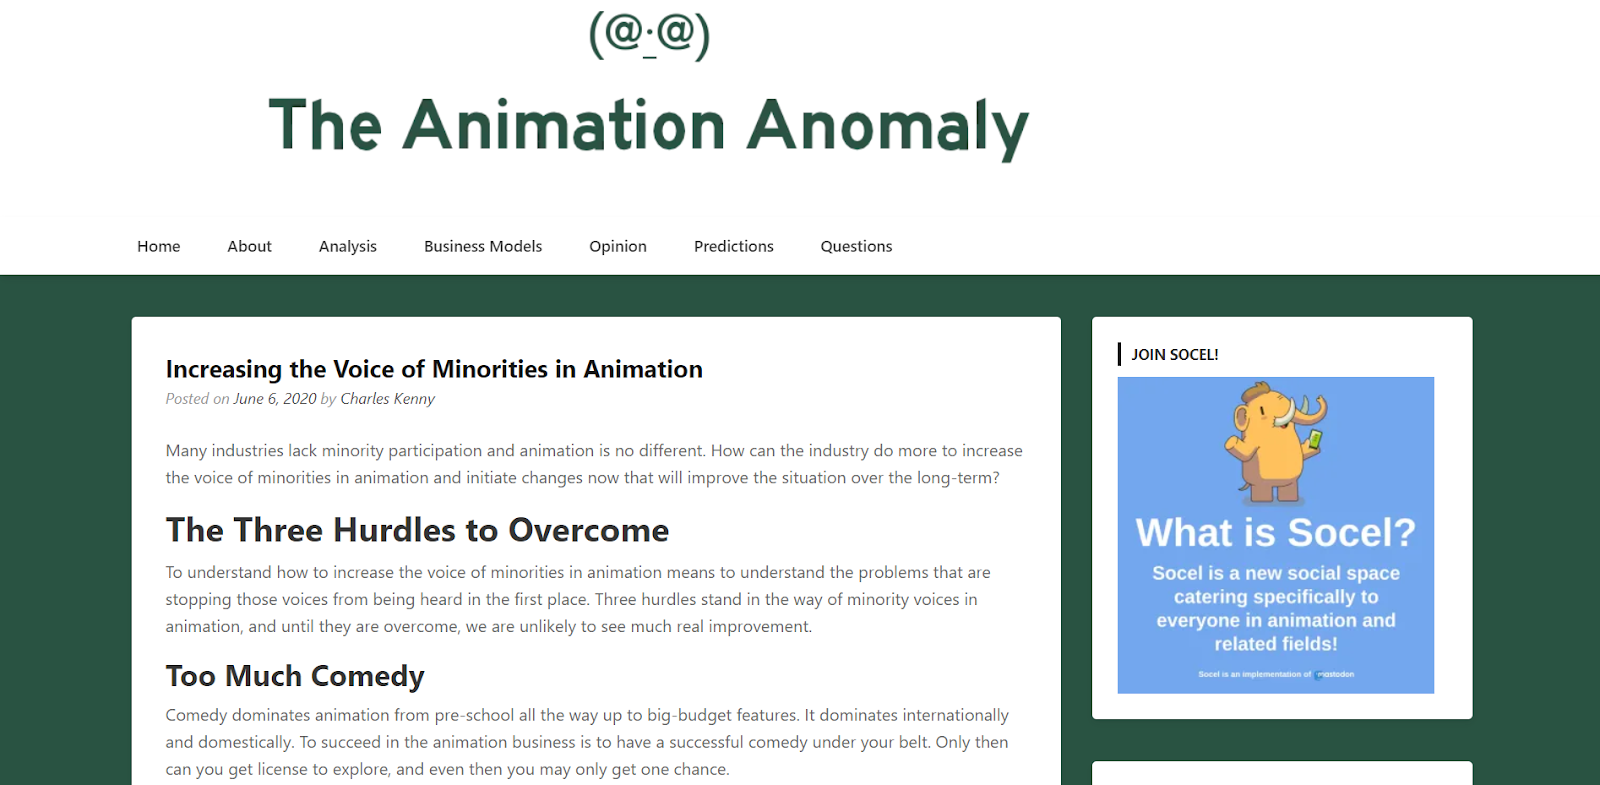 The Animation Anomaly blog